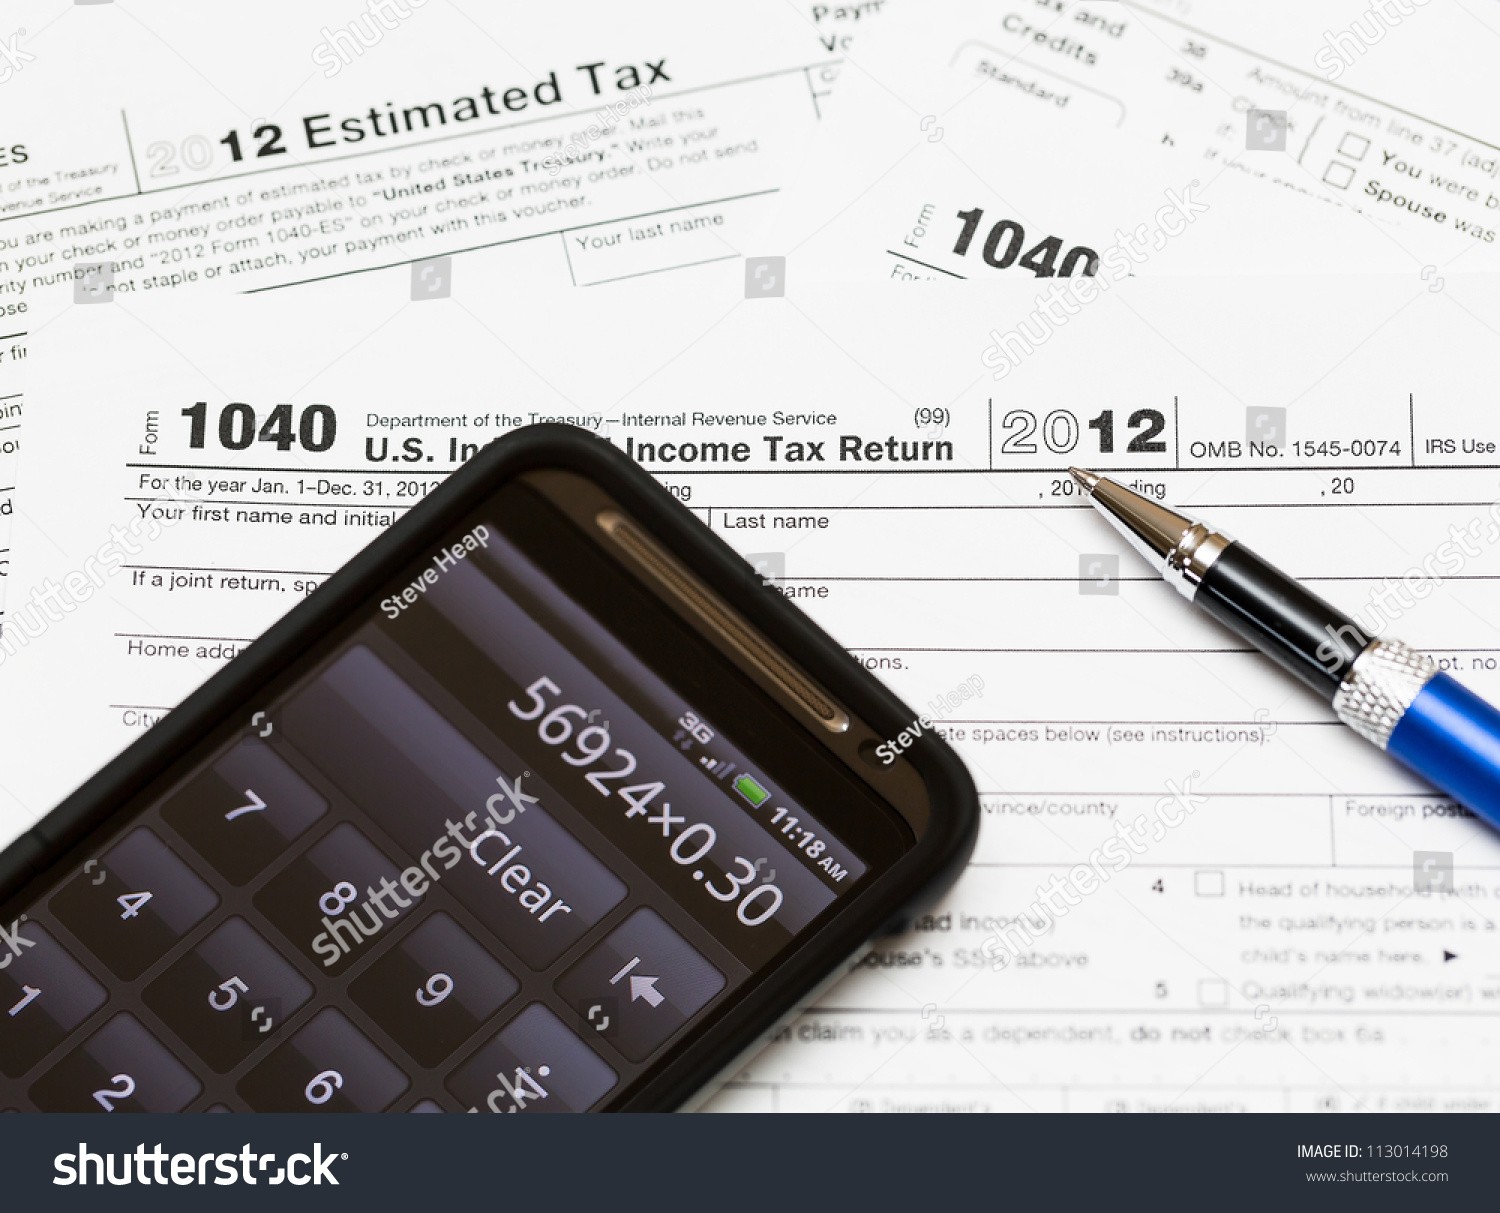 Tax form 1040 for tax year 2012 for us individual tax for 1040 tax table calculator